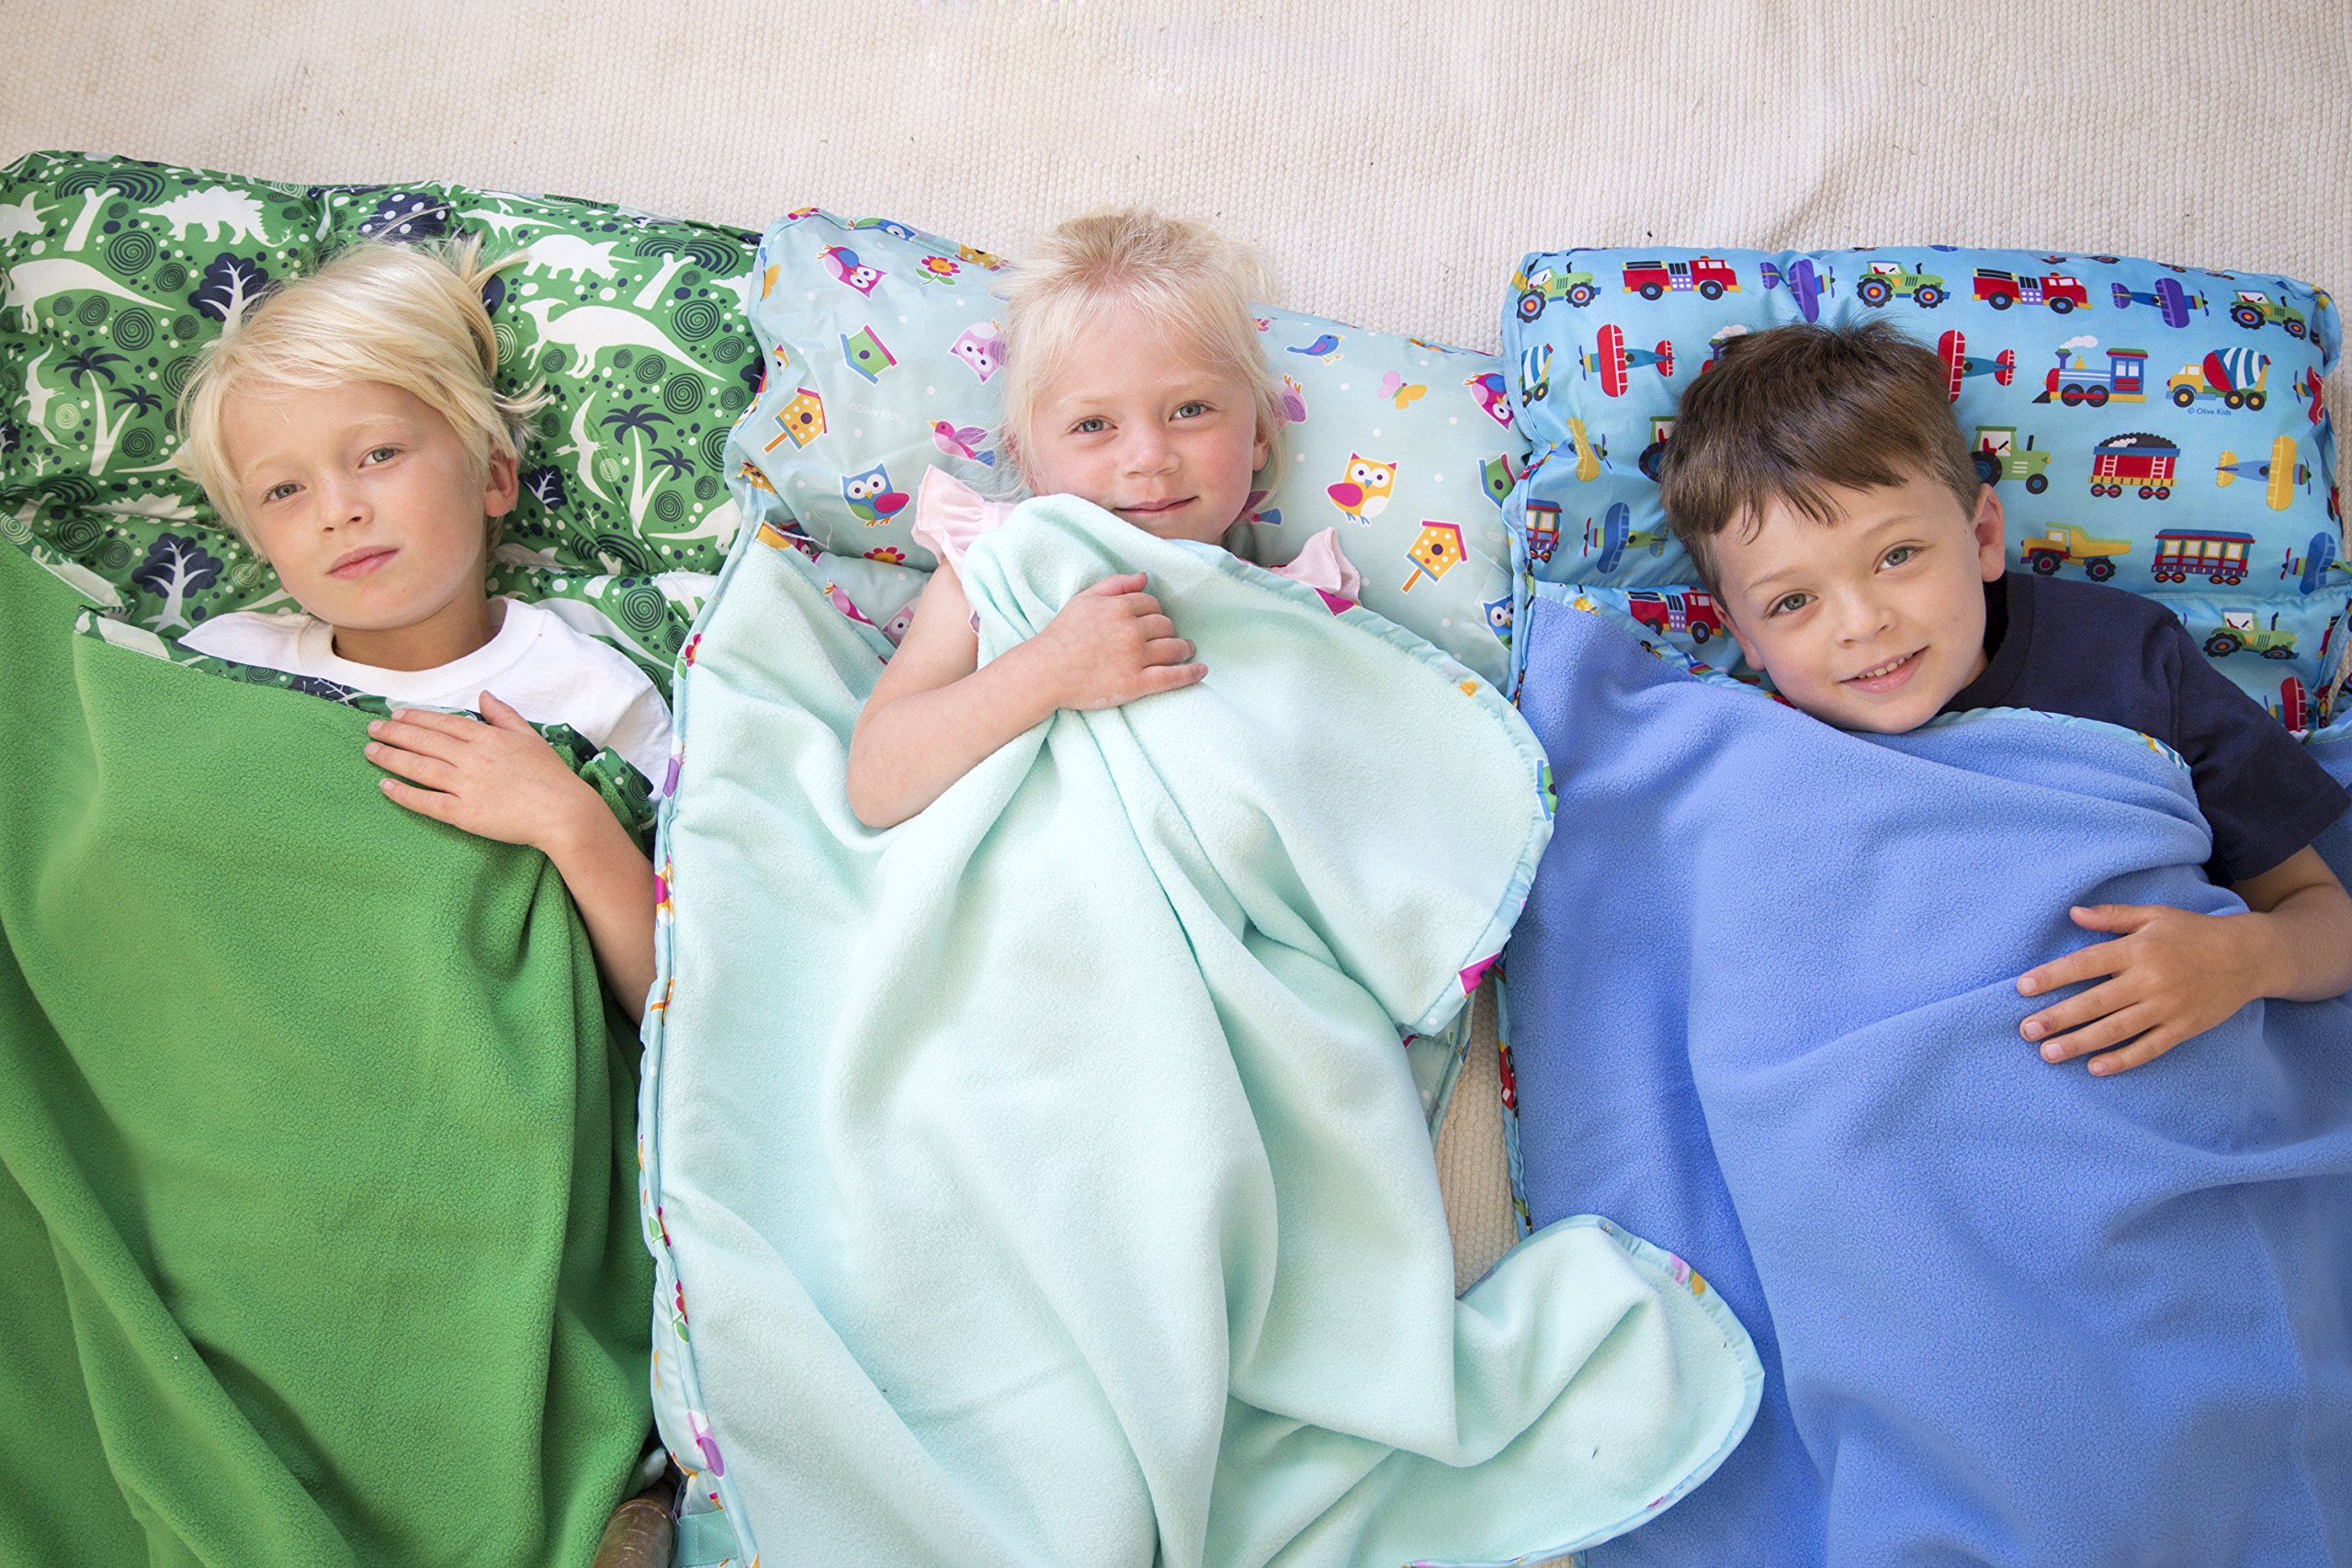 Easy Clean, Water-Resistant Nap Mat, Wildkin Children's Easy Clean Nap Mat with Built in Blanket and Pillowcase, Pillow Insert Included, Premium Microfiber, Ages 3-7 Years - Dinomite Dinosaurs by Wildkin (Image #5)